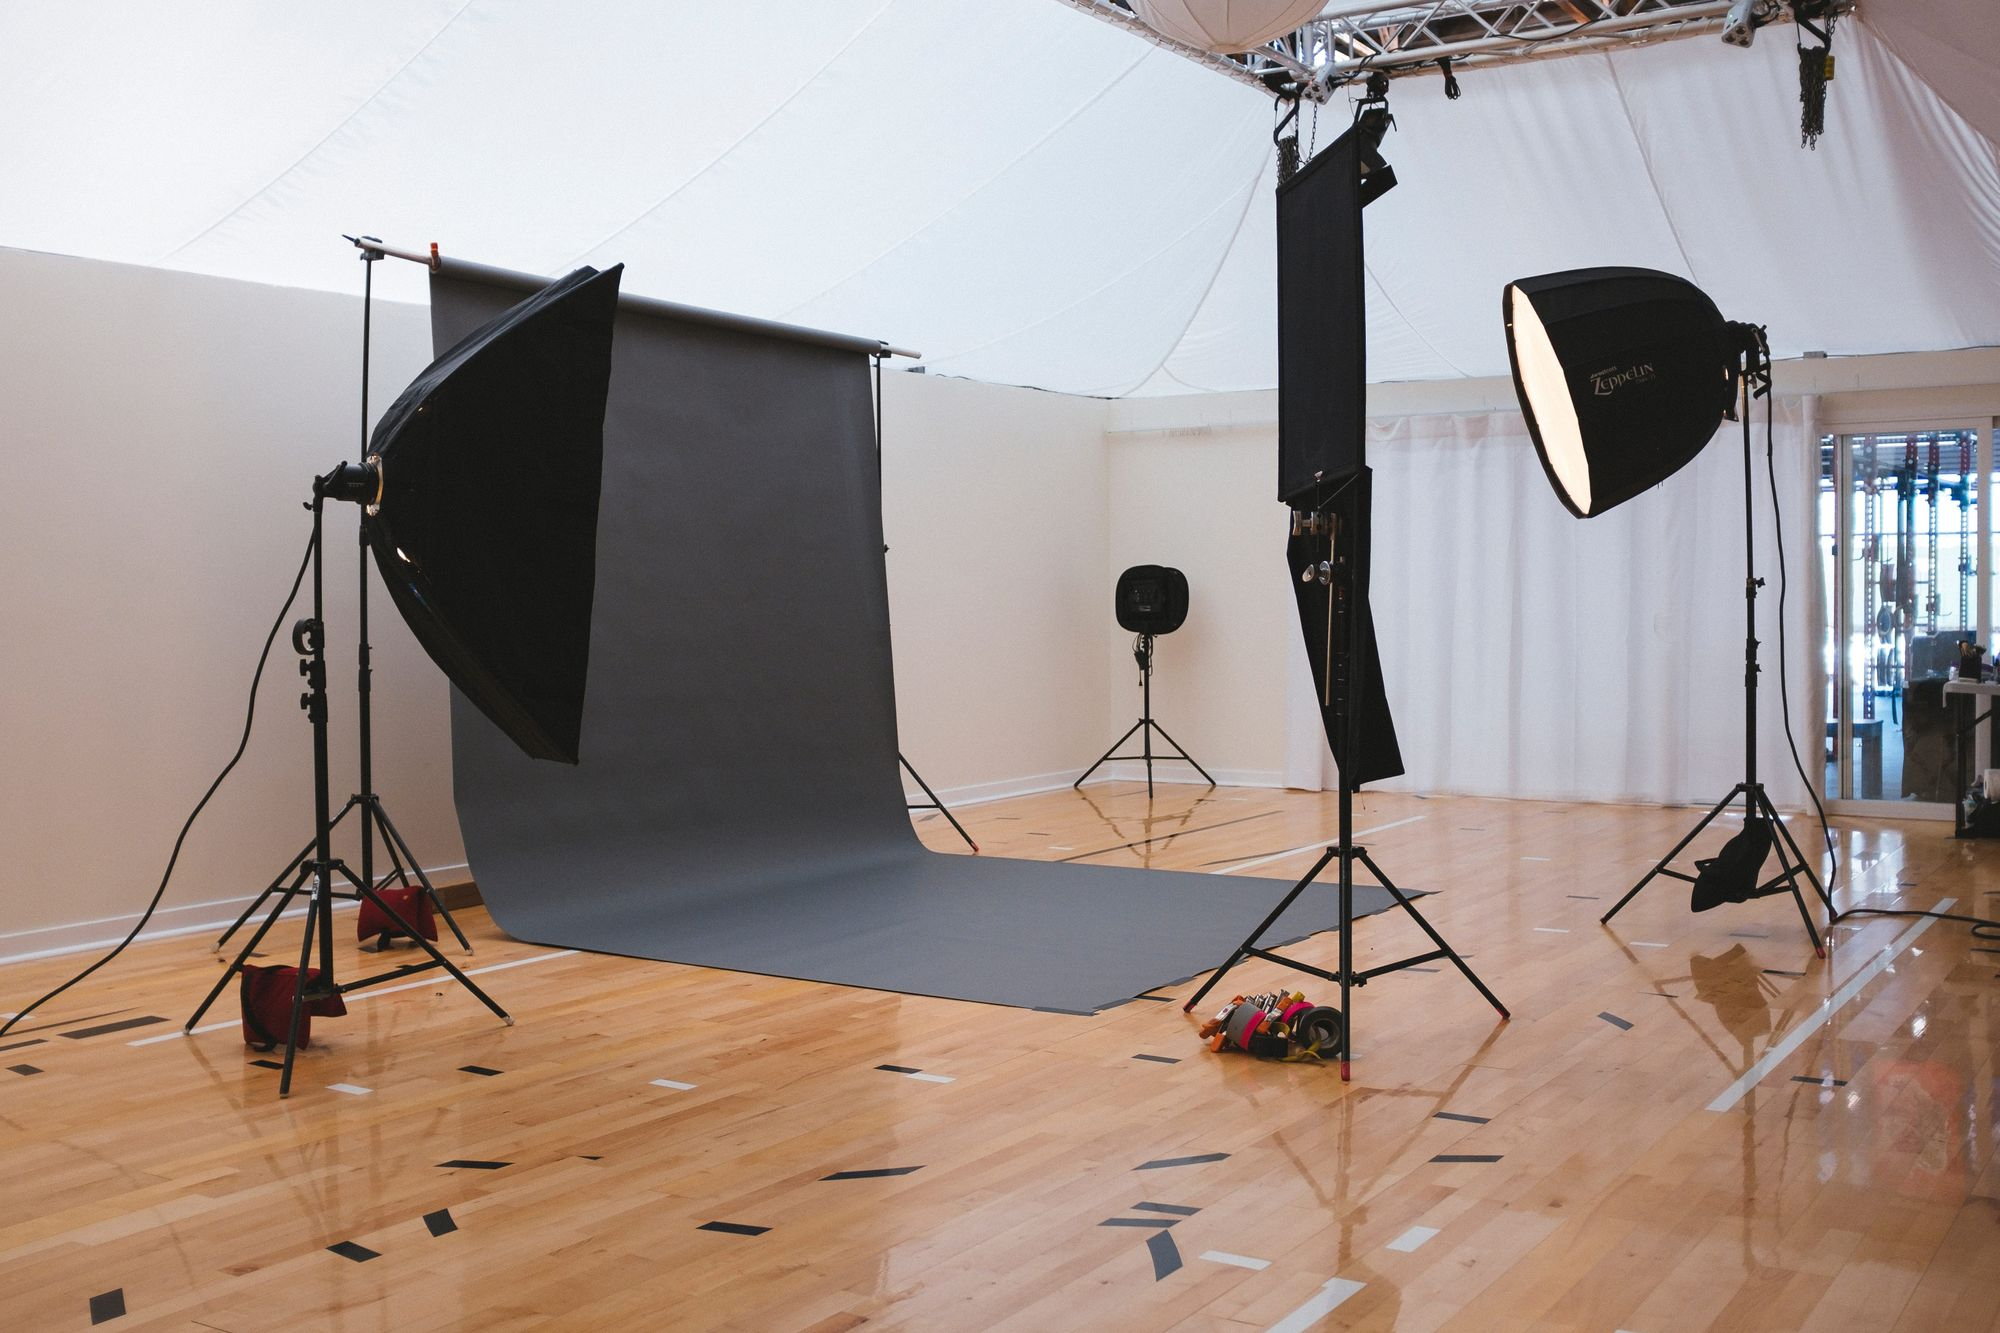 There's many ways to be creative with three-point lighting